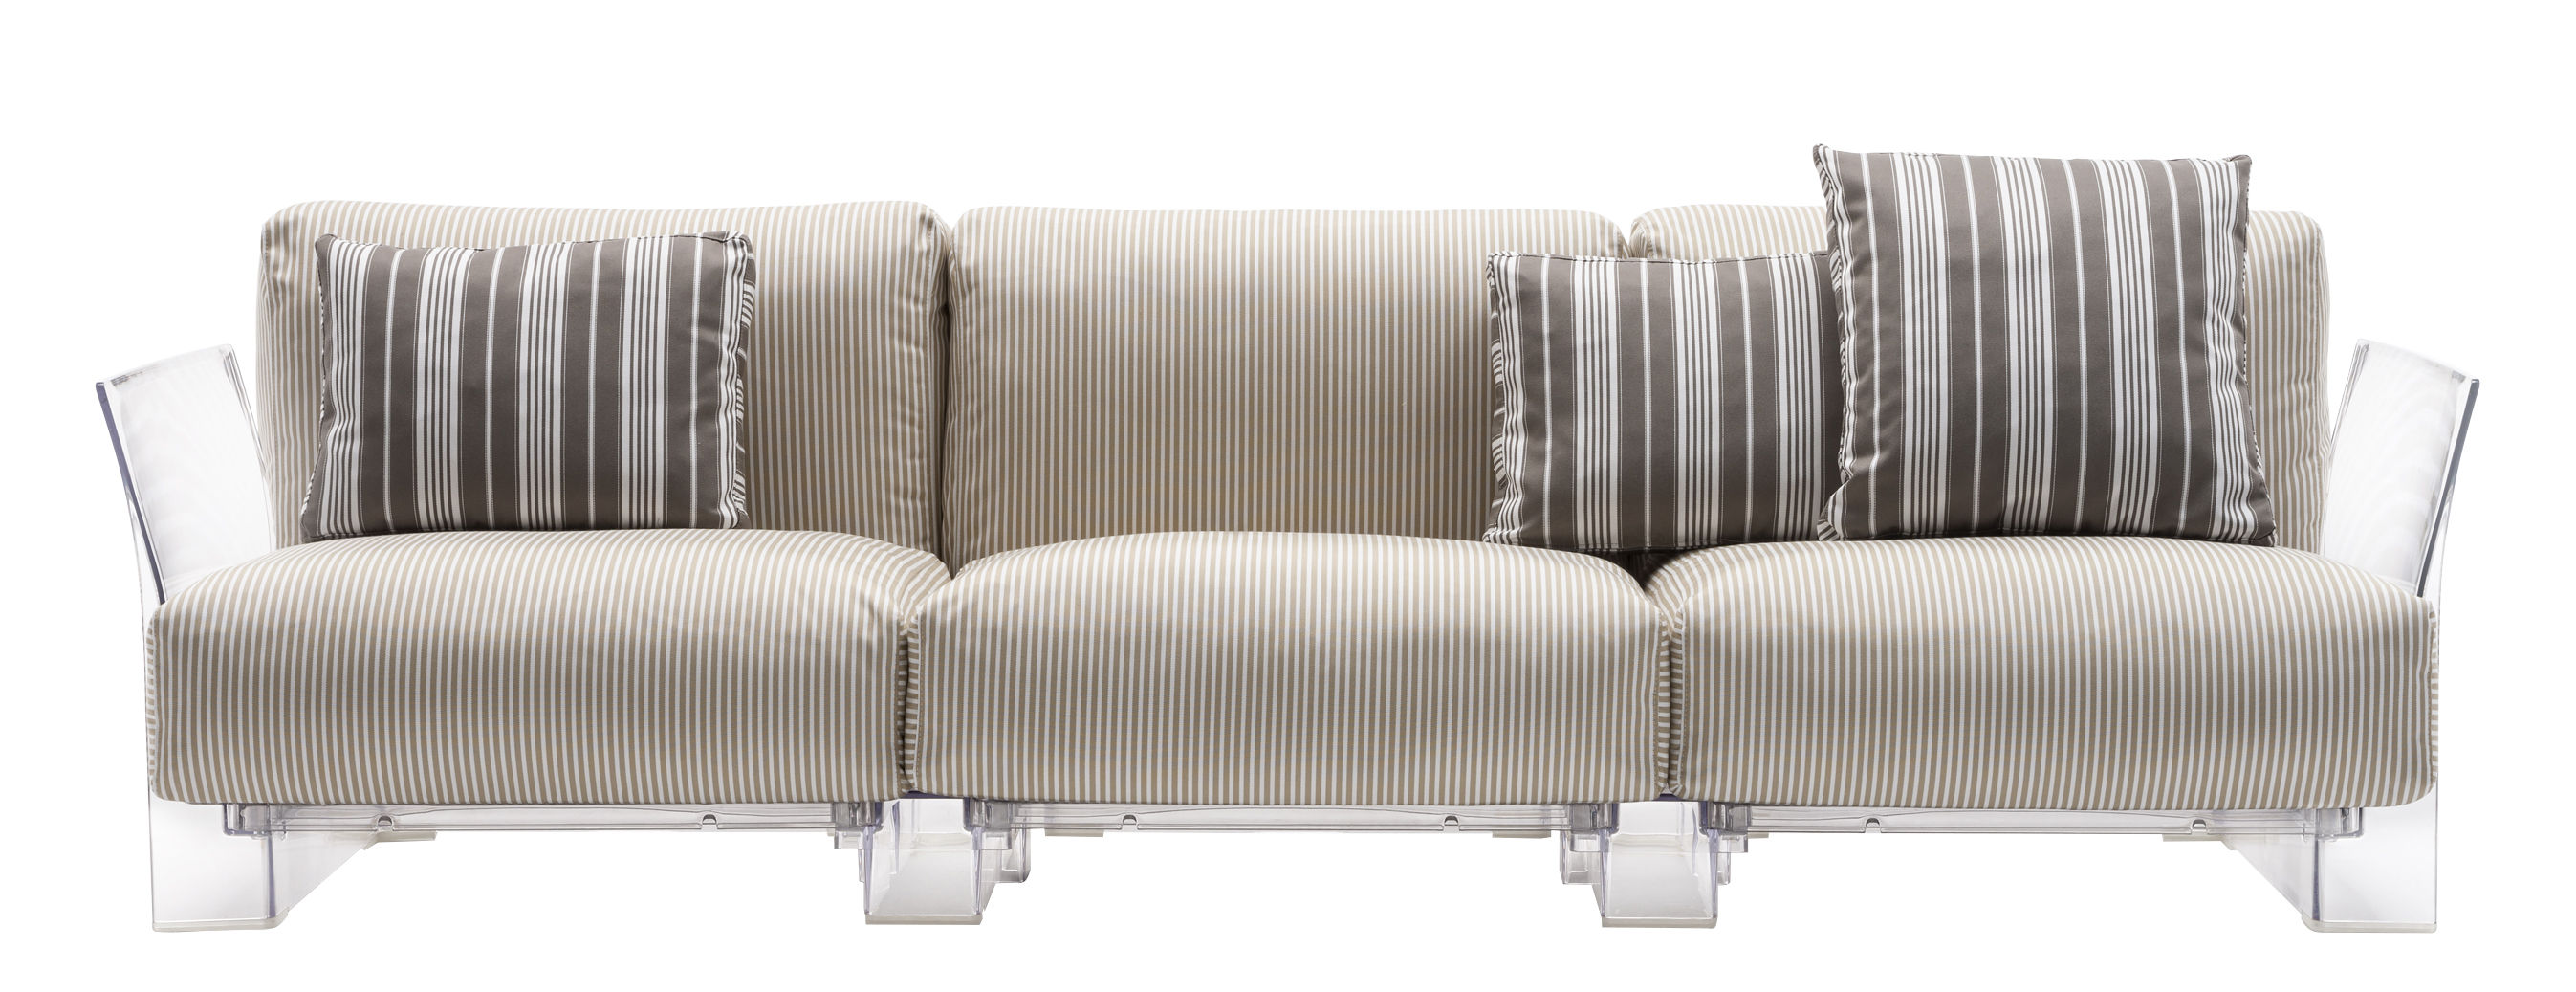 Furniture - Sofas - Pop outdoor Straight sofa - 3 seaters / L 255 cm by Kartell - Beige stripes / Transparent - Expanded polyurethane, Polycarbonate, Water repellant fabric